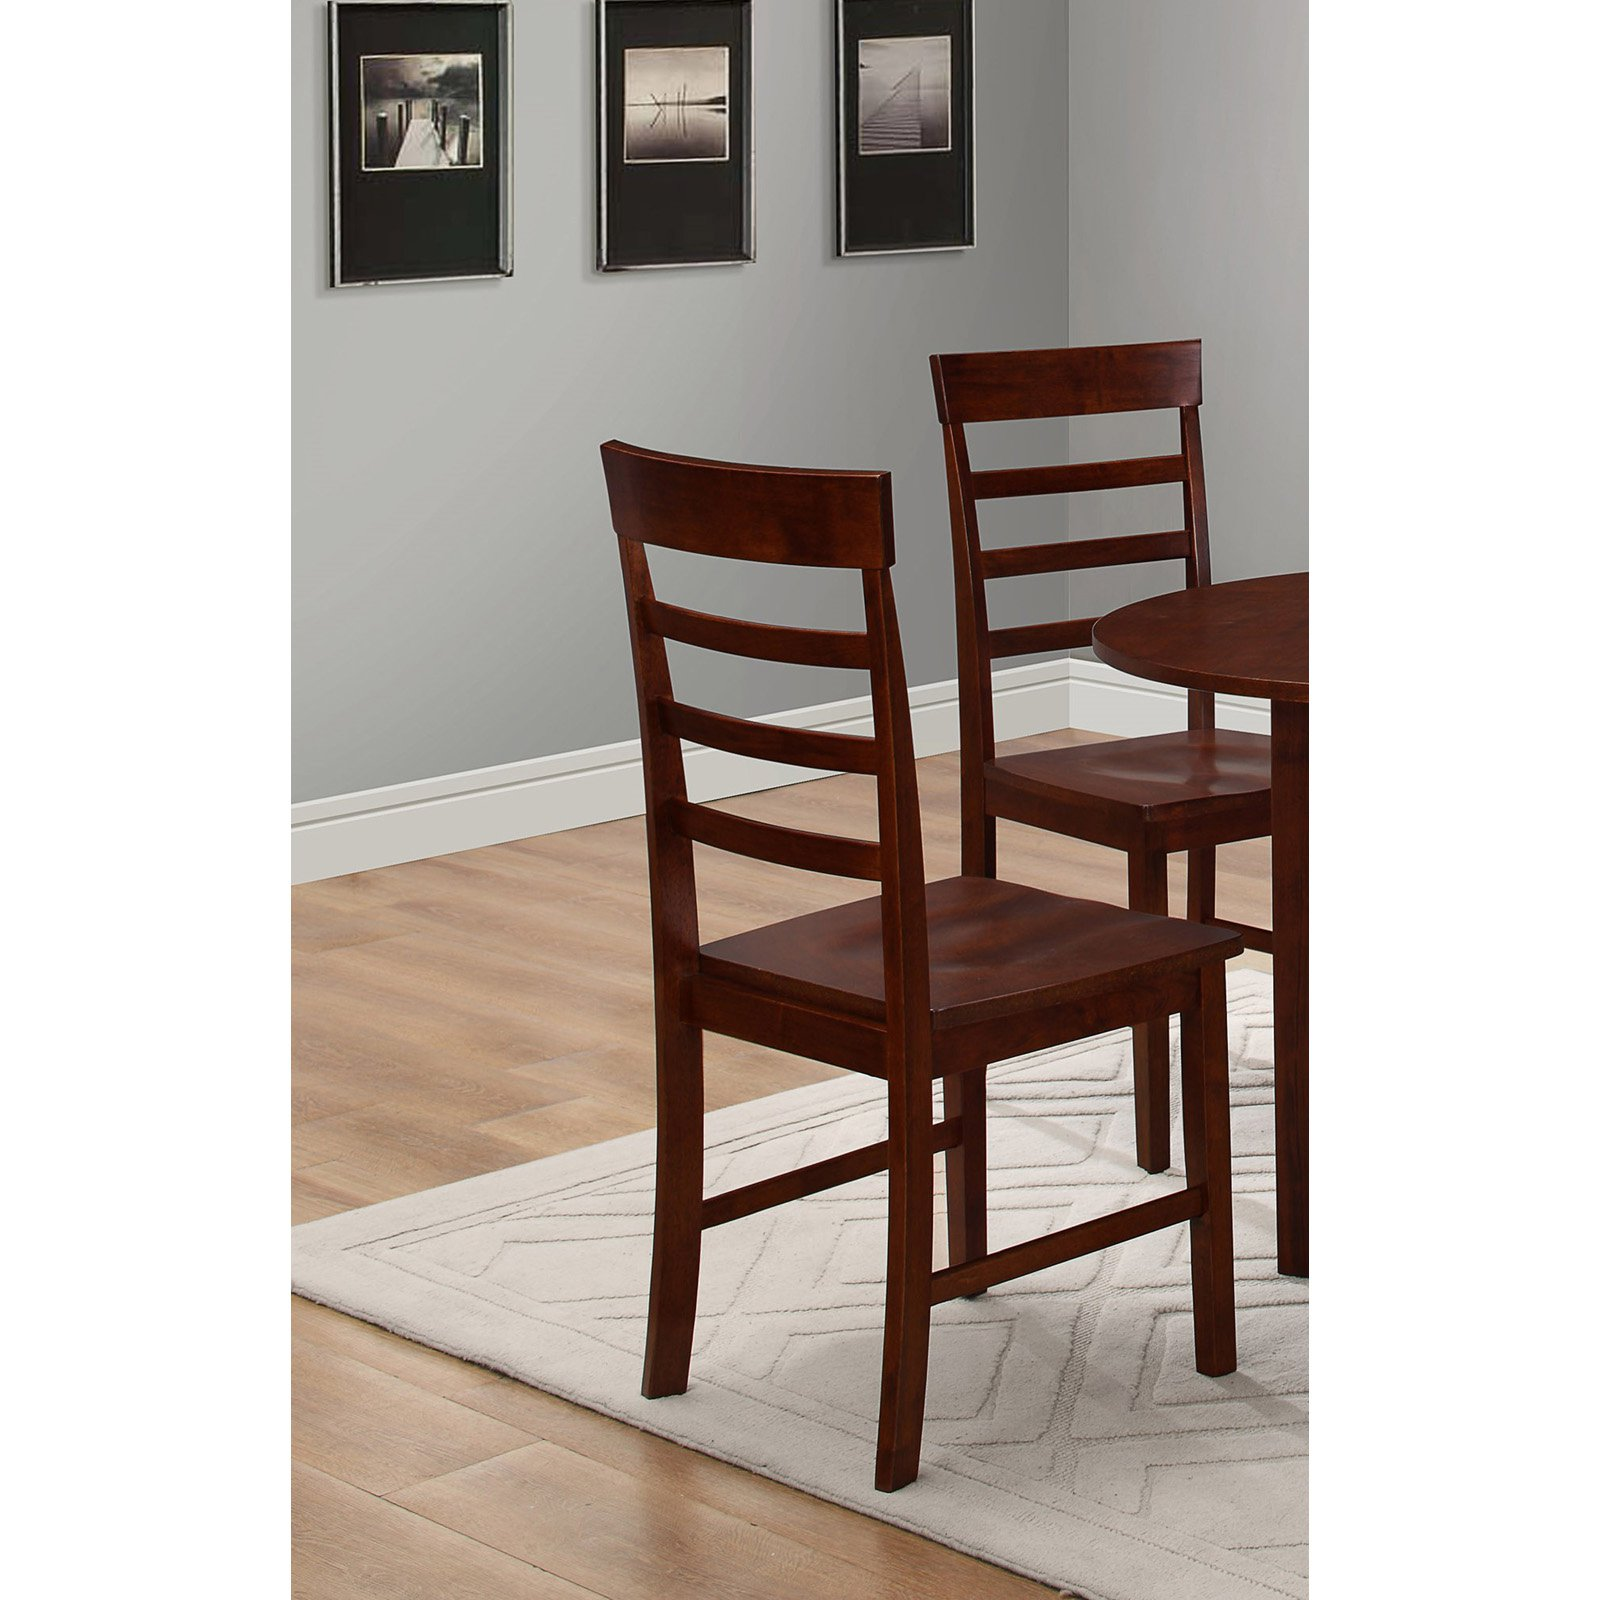 4D Concepts Harrison Dining Chairs - Set of 2